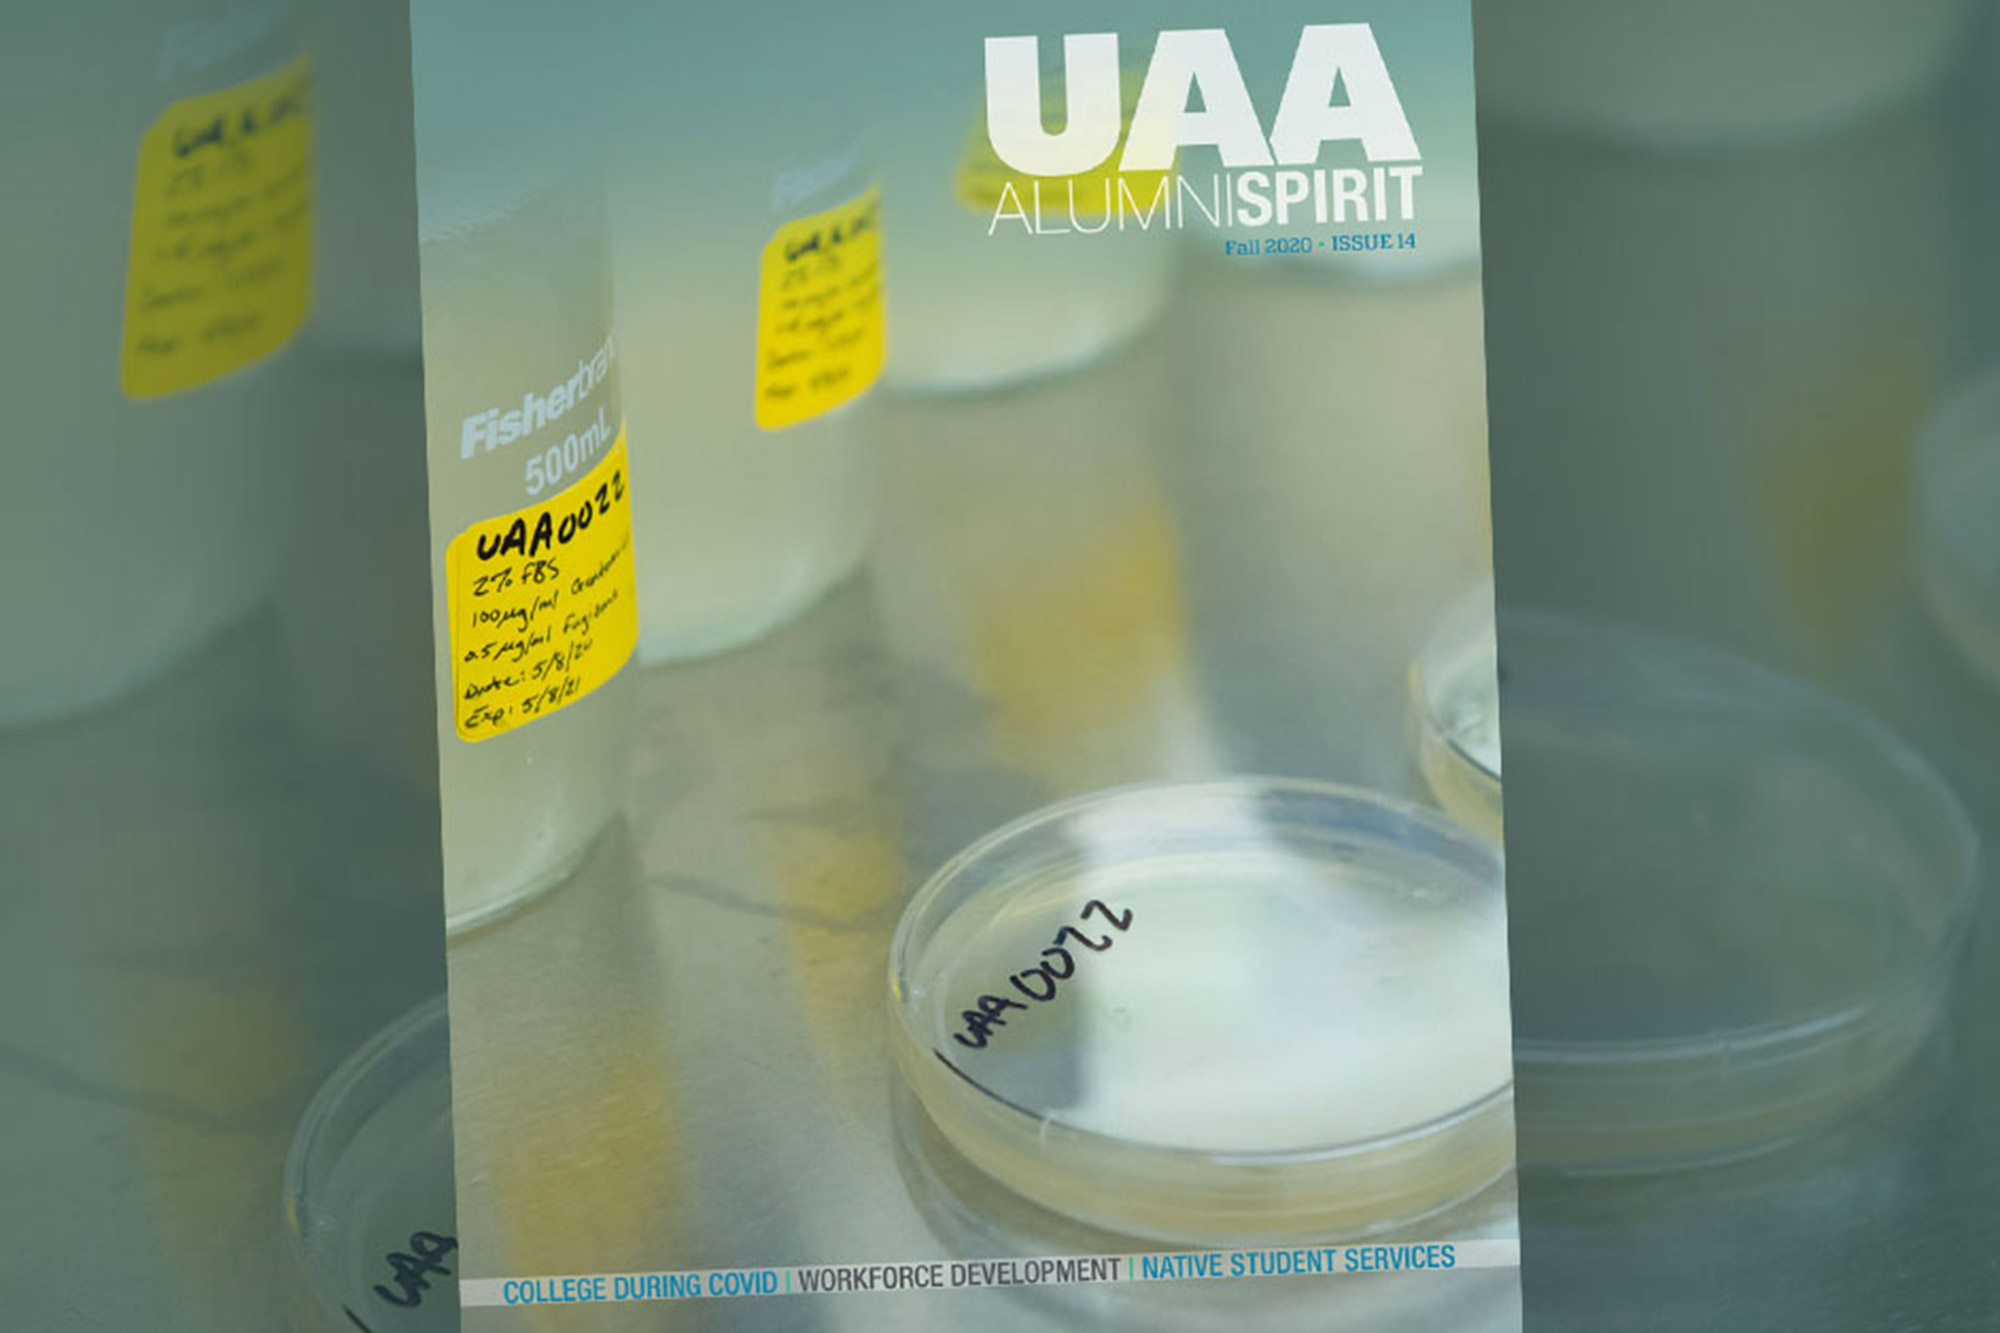 Petri dishes on the cover of fall 2020 Alumni Spirit magazine